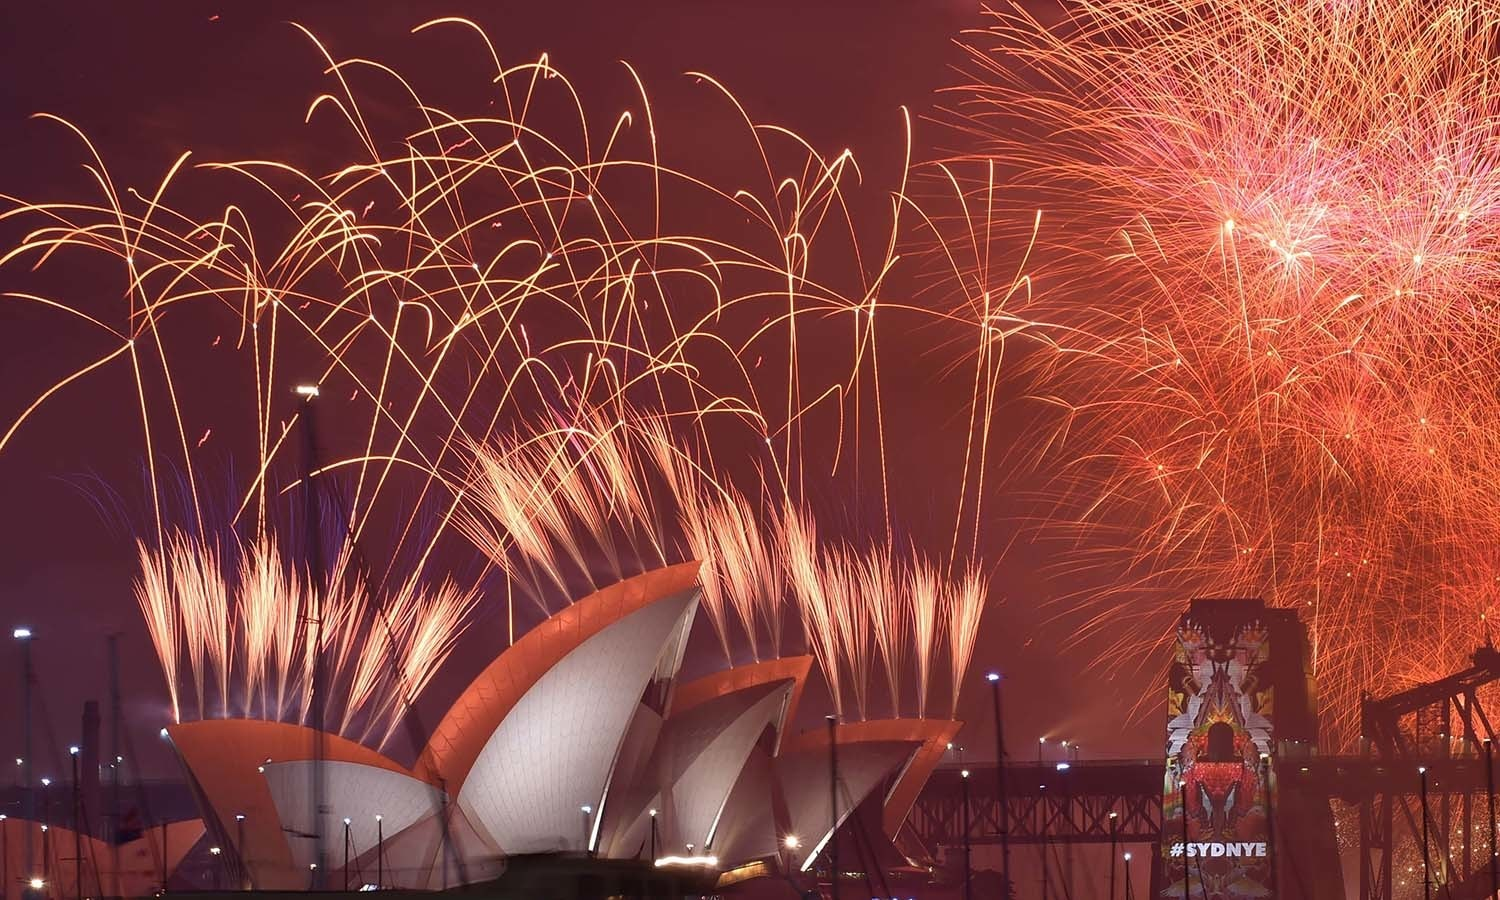 New Year's Eve fireworks erupt over Sydney's iconic Harbour Bridge and Opera House during the traditional fireworks show on January 1, 2016. AFP PHOTO / Peter PARKS